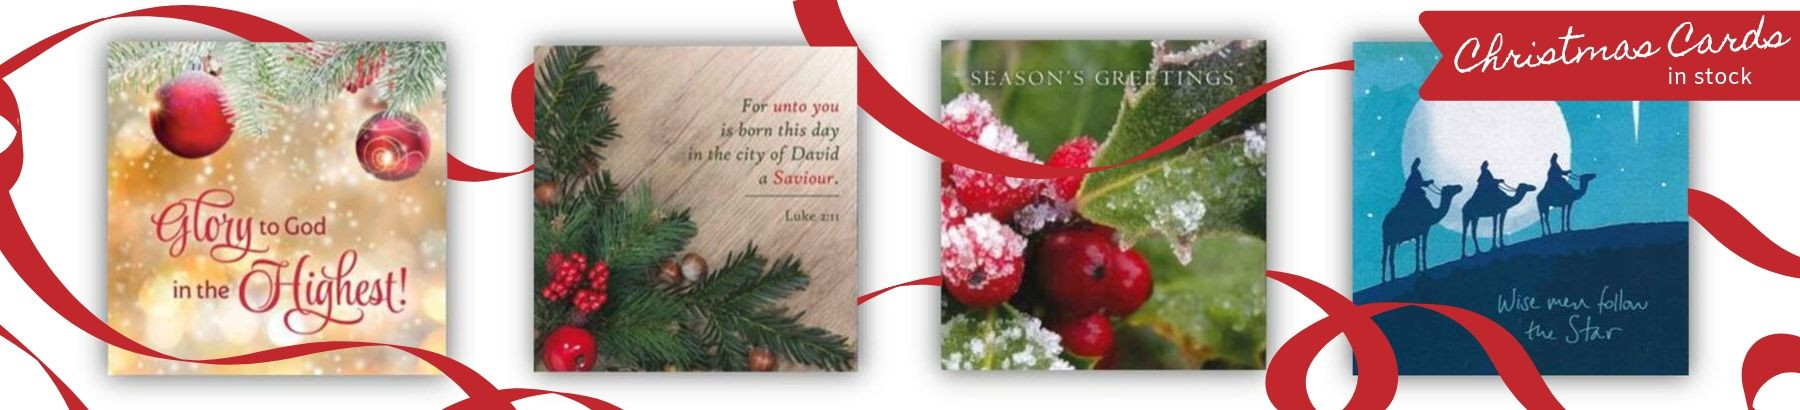 A wide variety of Christmas Cards in stock